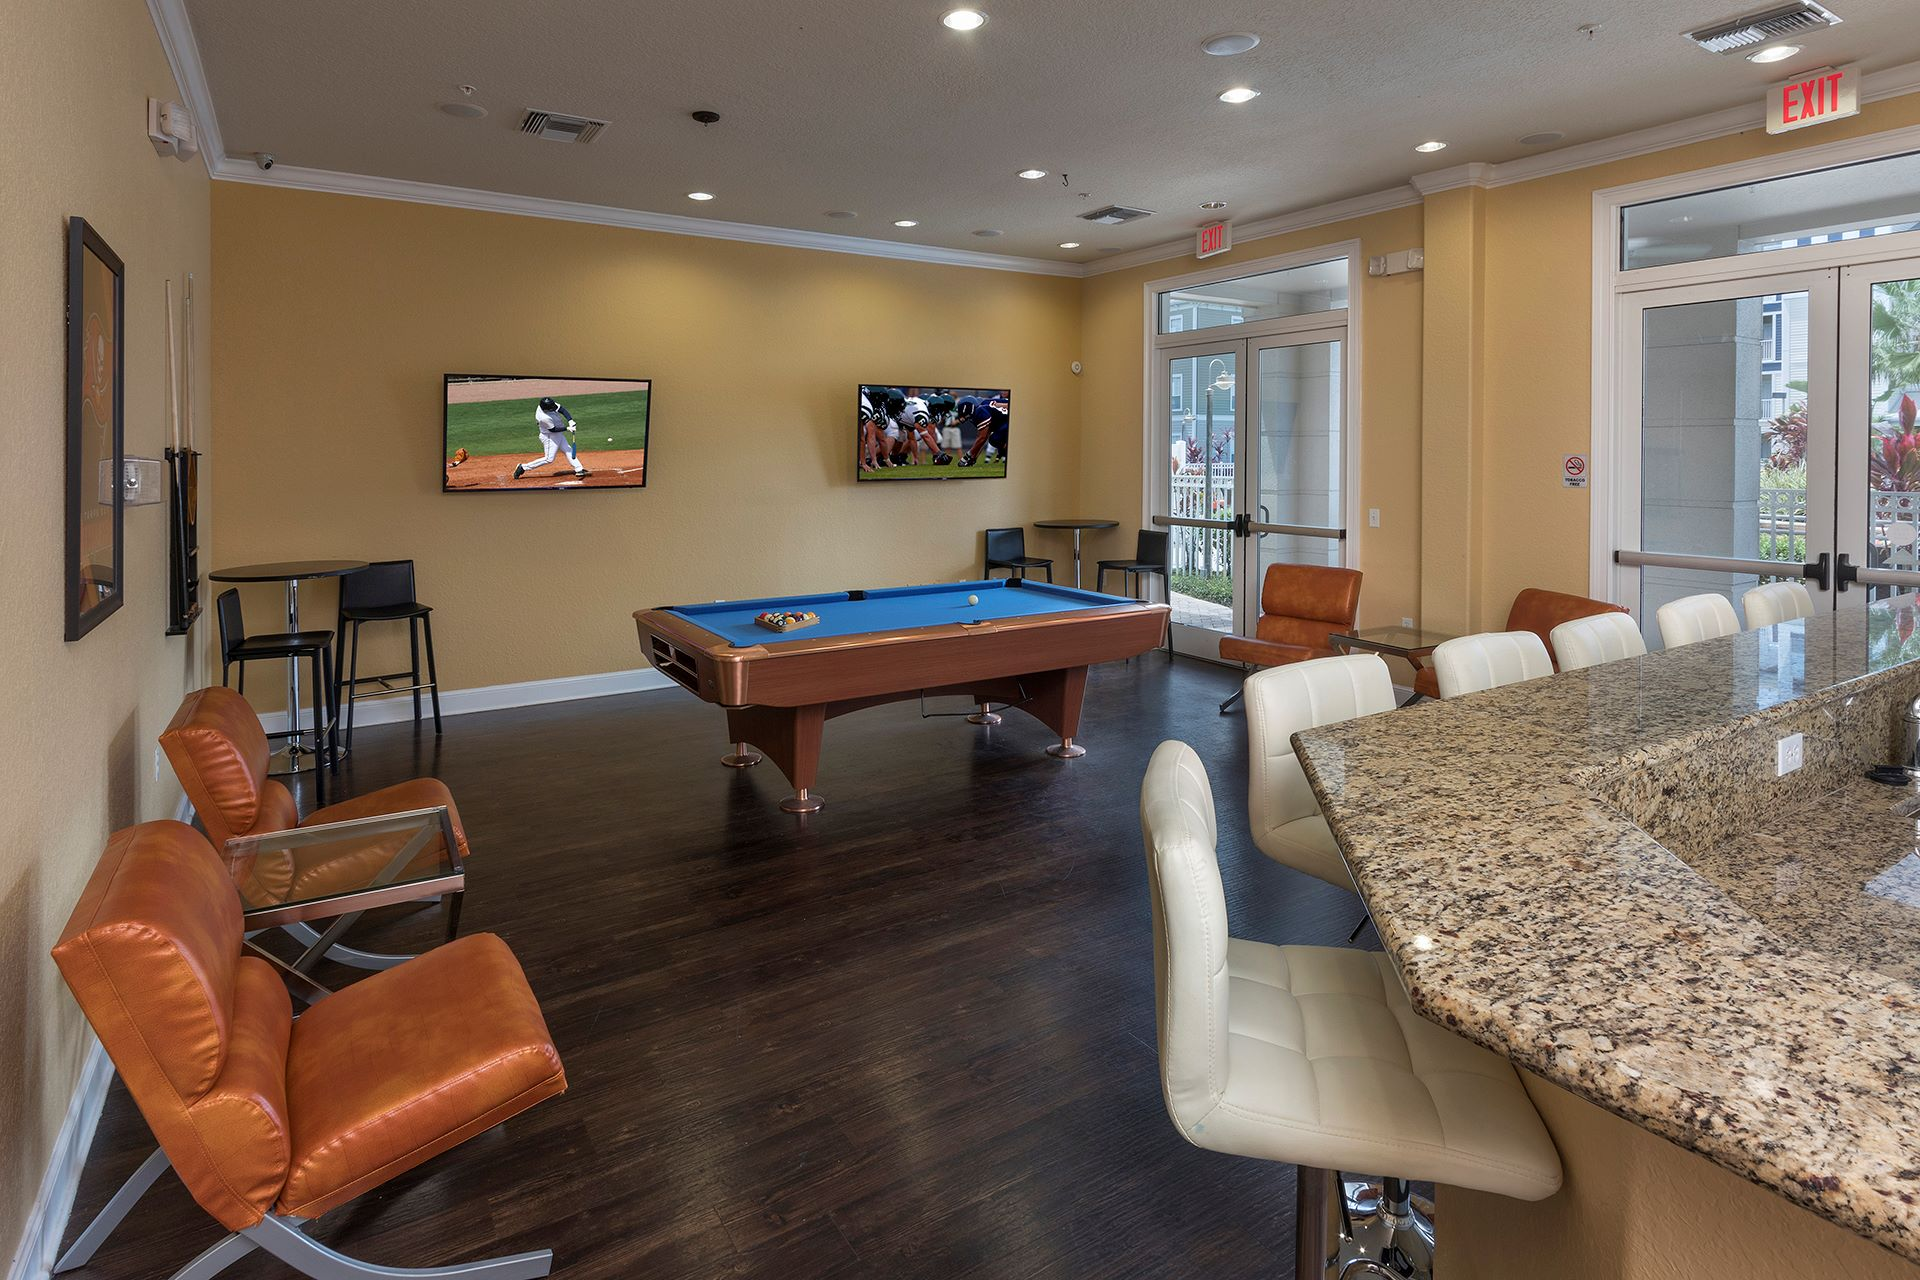 game room with pool table and TVs